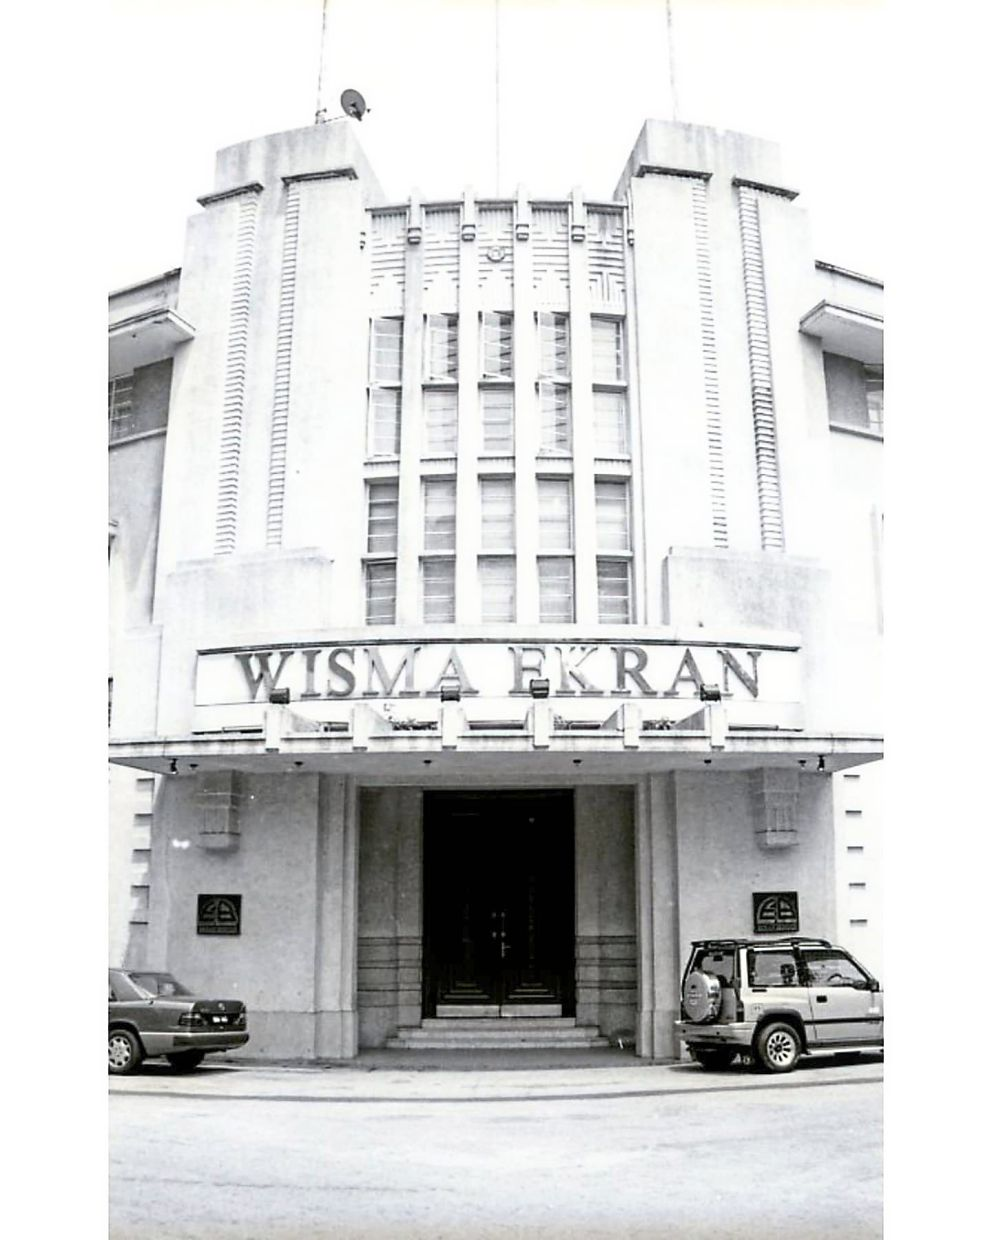 Designed by AO Coltman of Booty and Edwards, this KL building was constructed in 1937. Originally known as the Anglo-Oriental building, it was later taken over by the Malaysian Mining Corporation. Architect Chen renovated the building in 1988 for use by Mahkota College.